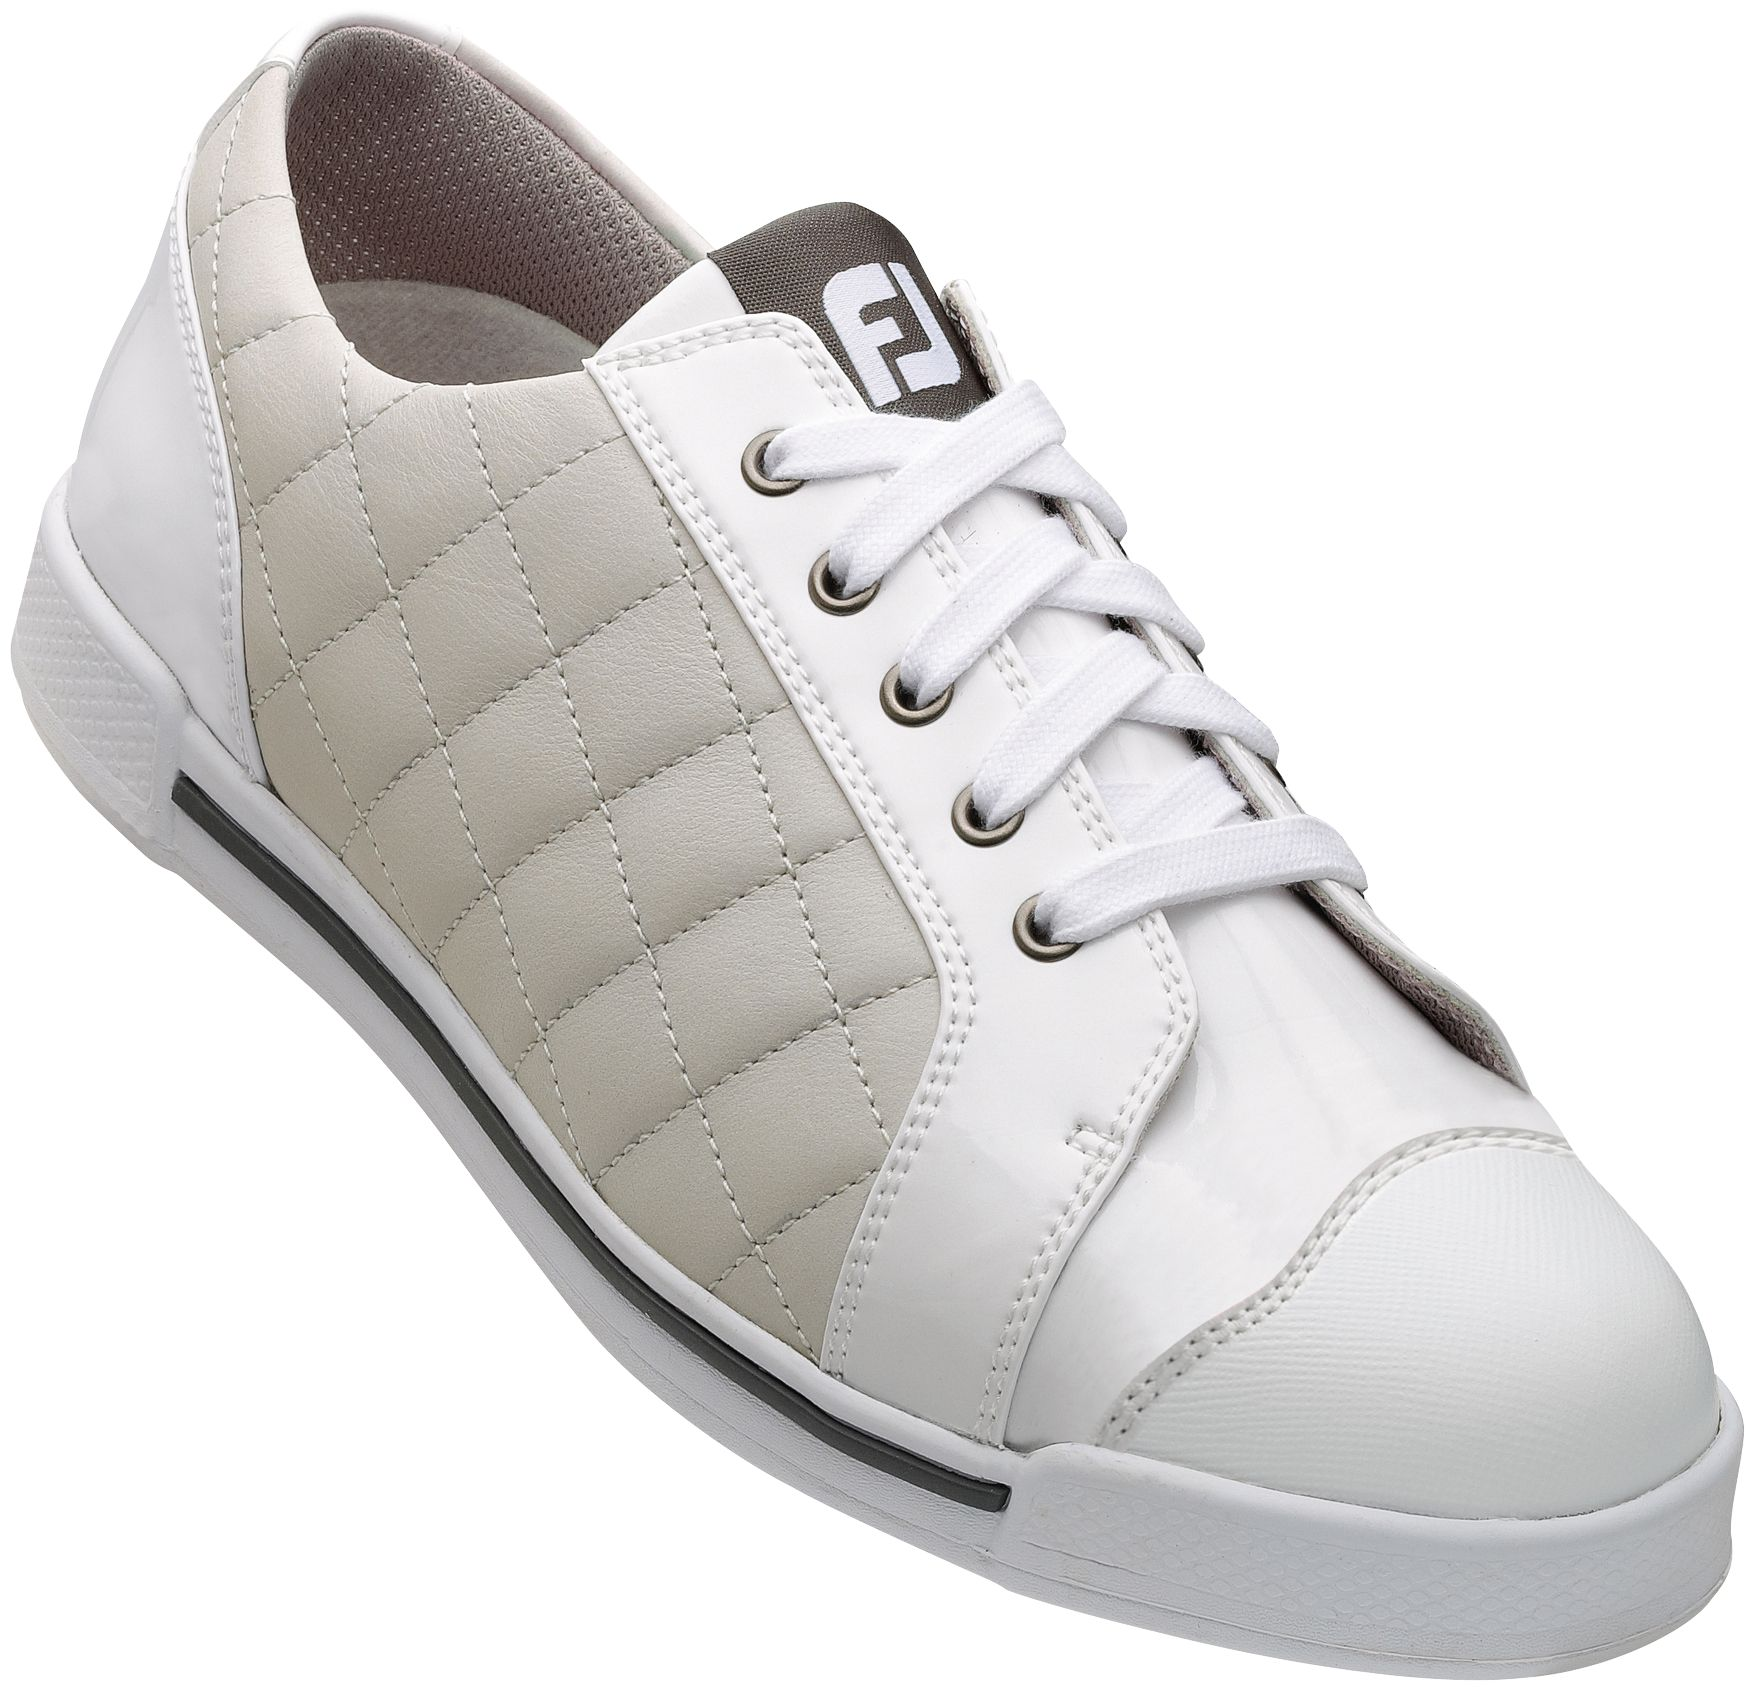 FootJoy Women's Summer Series Golf Shoes - White/White